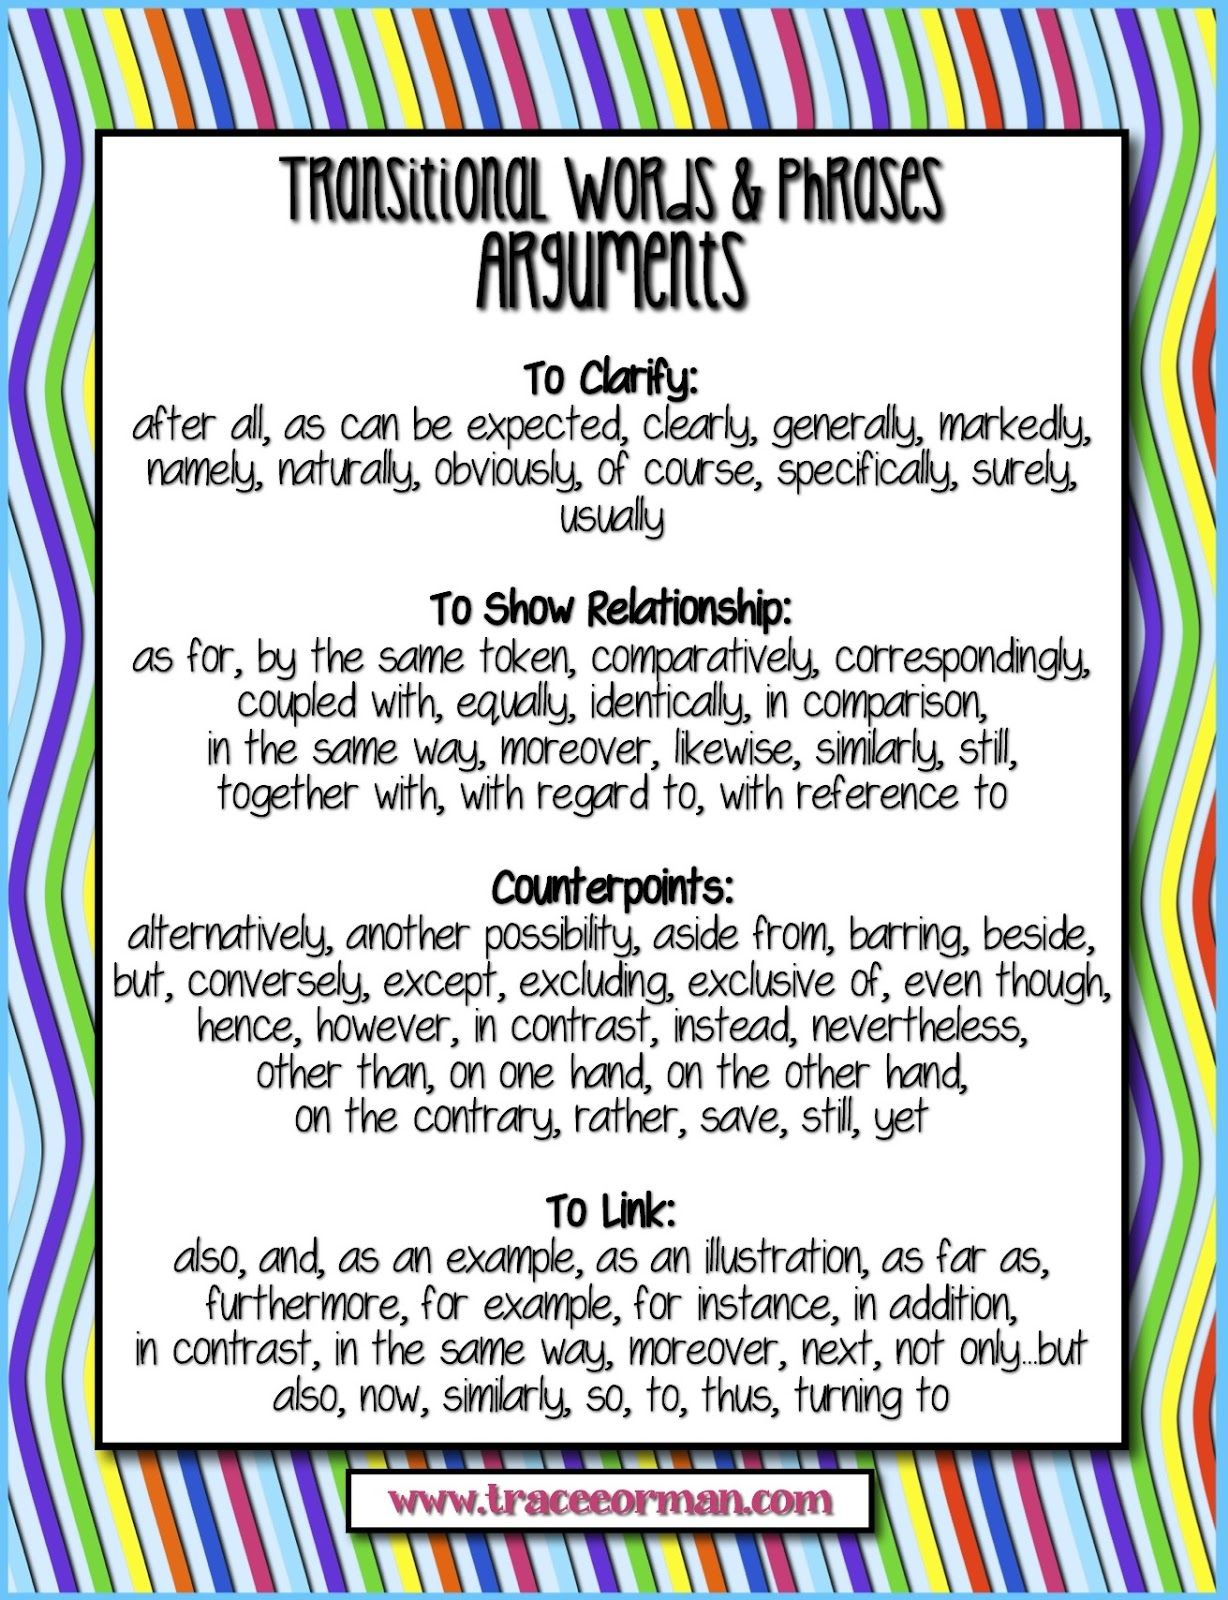 common core tips using transitional words in argumentative common core tips using transitional words in argumentative writing